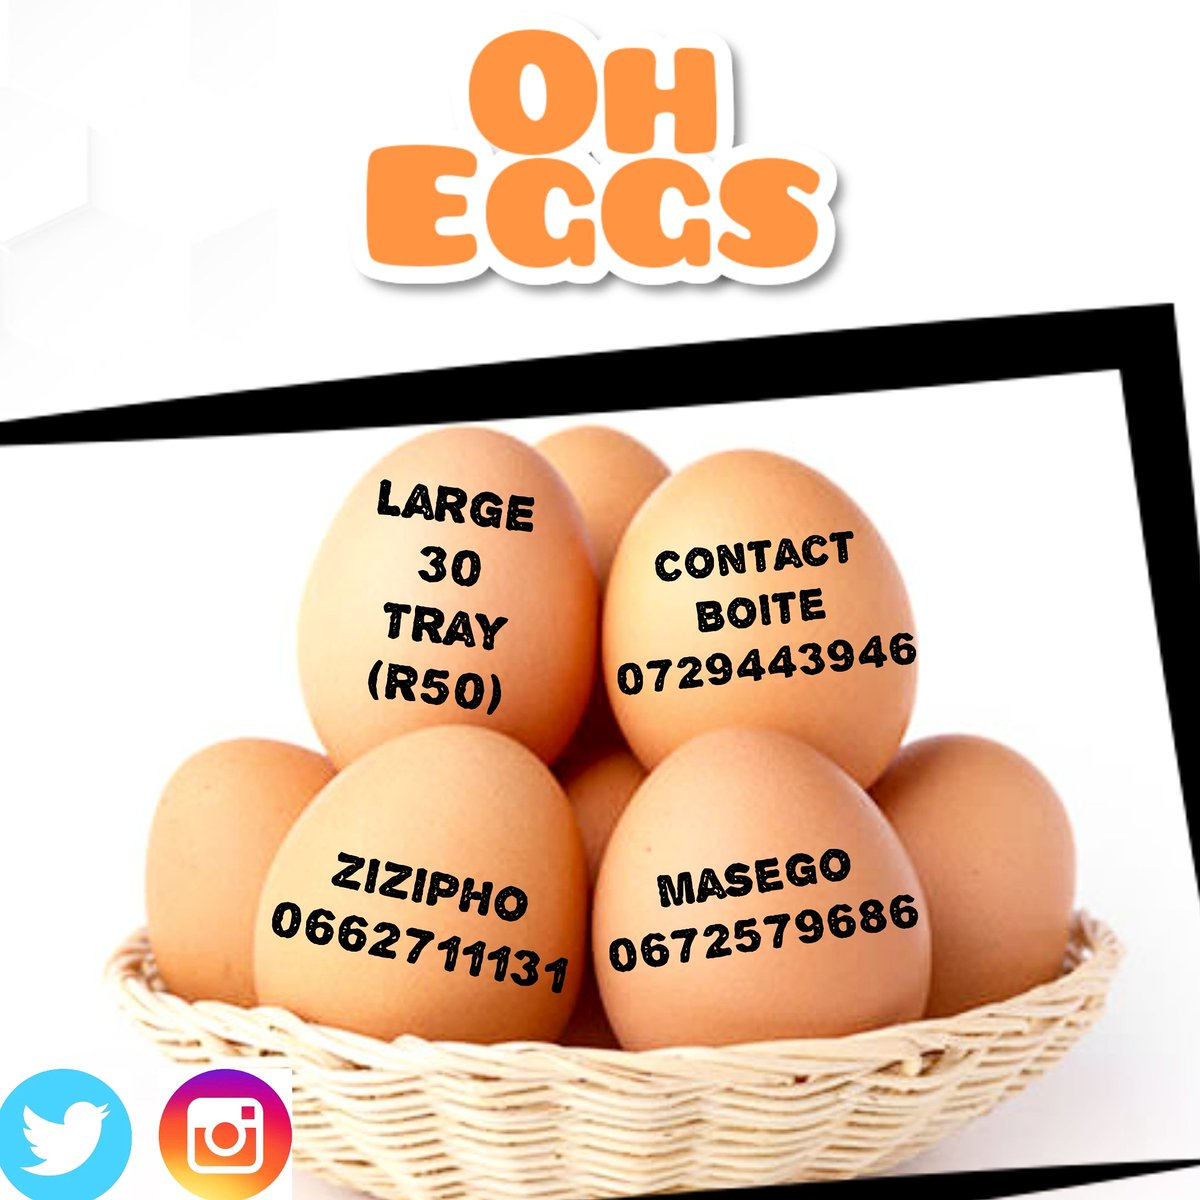 OH EGGS is now live!   DM or WhatsApp us for orders and enquires  We deliver to UJ SophiaTown Res and Westdene <br>http://pic.twitter.com/5WxK2iEMIk